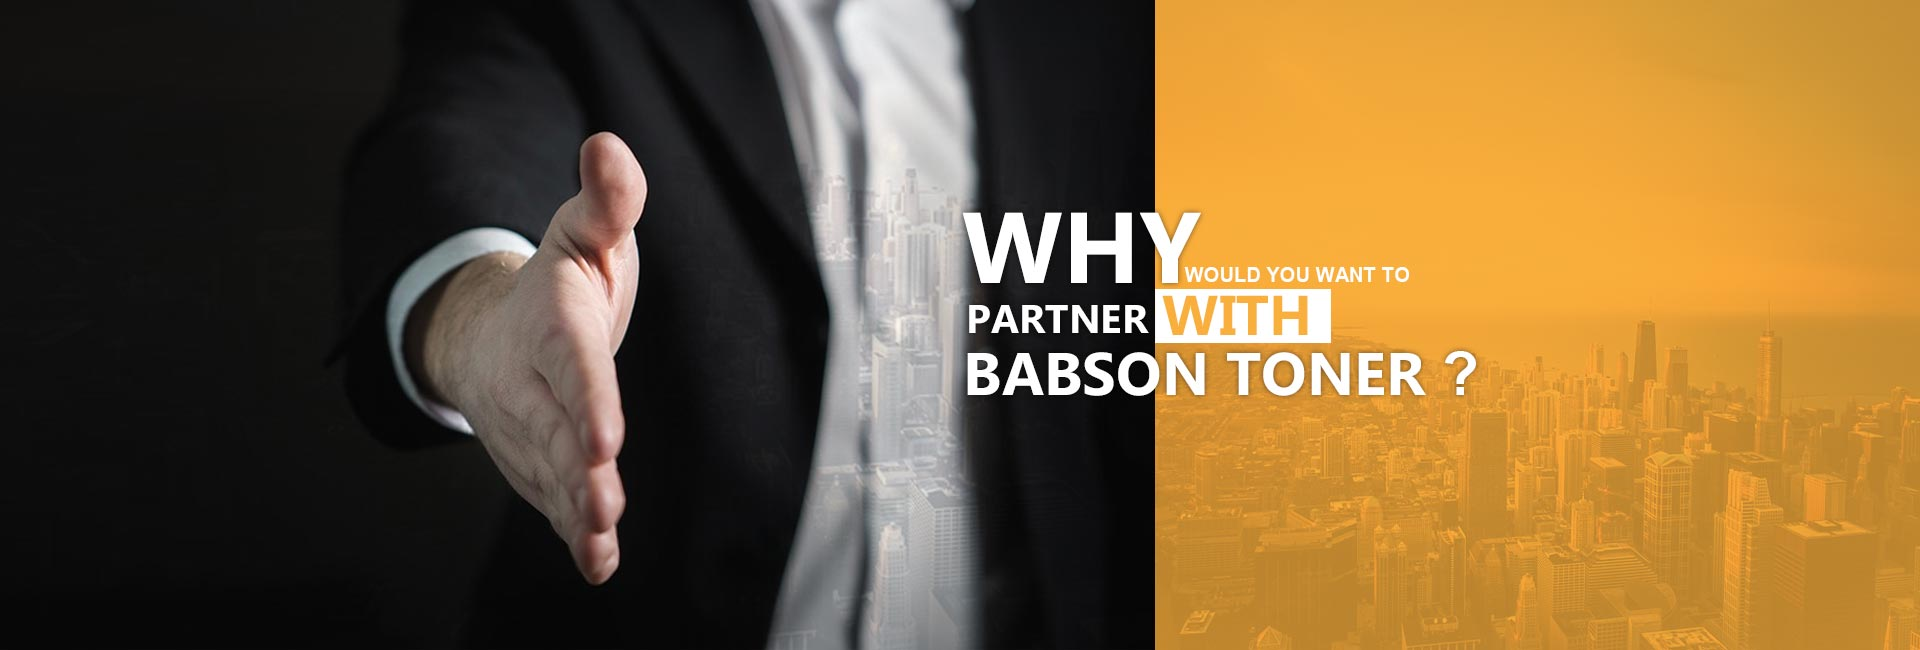 Babson Industrial Group Limited